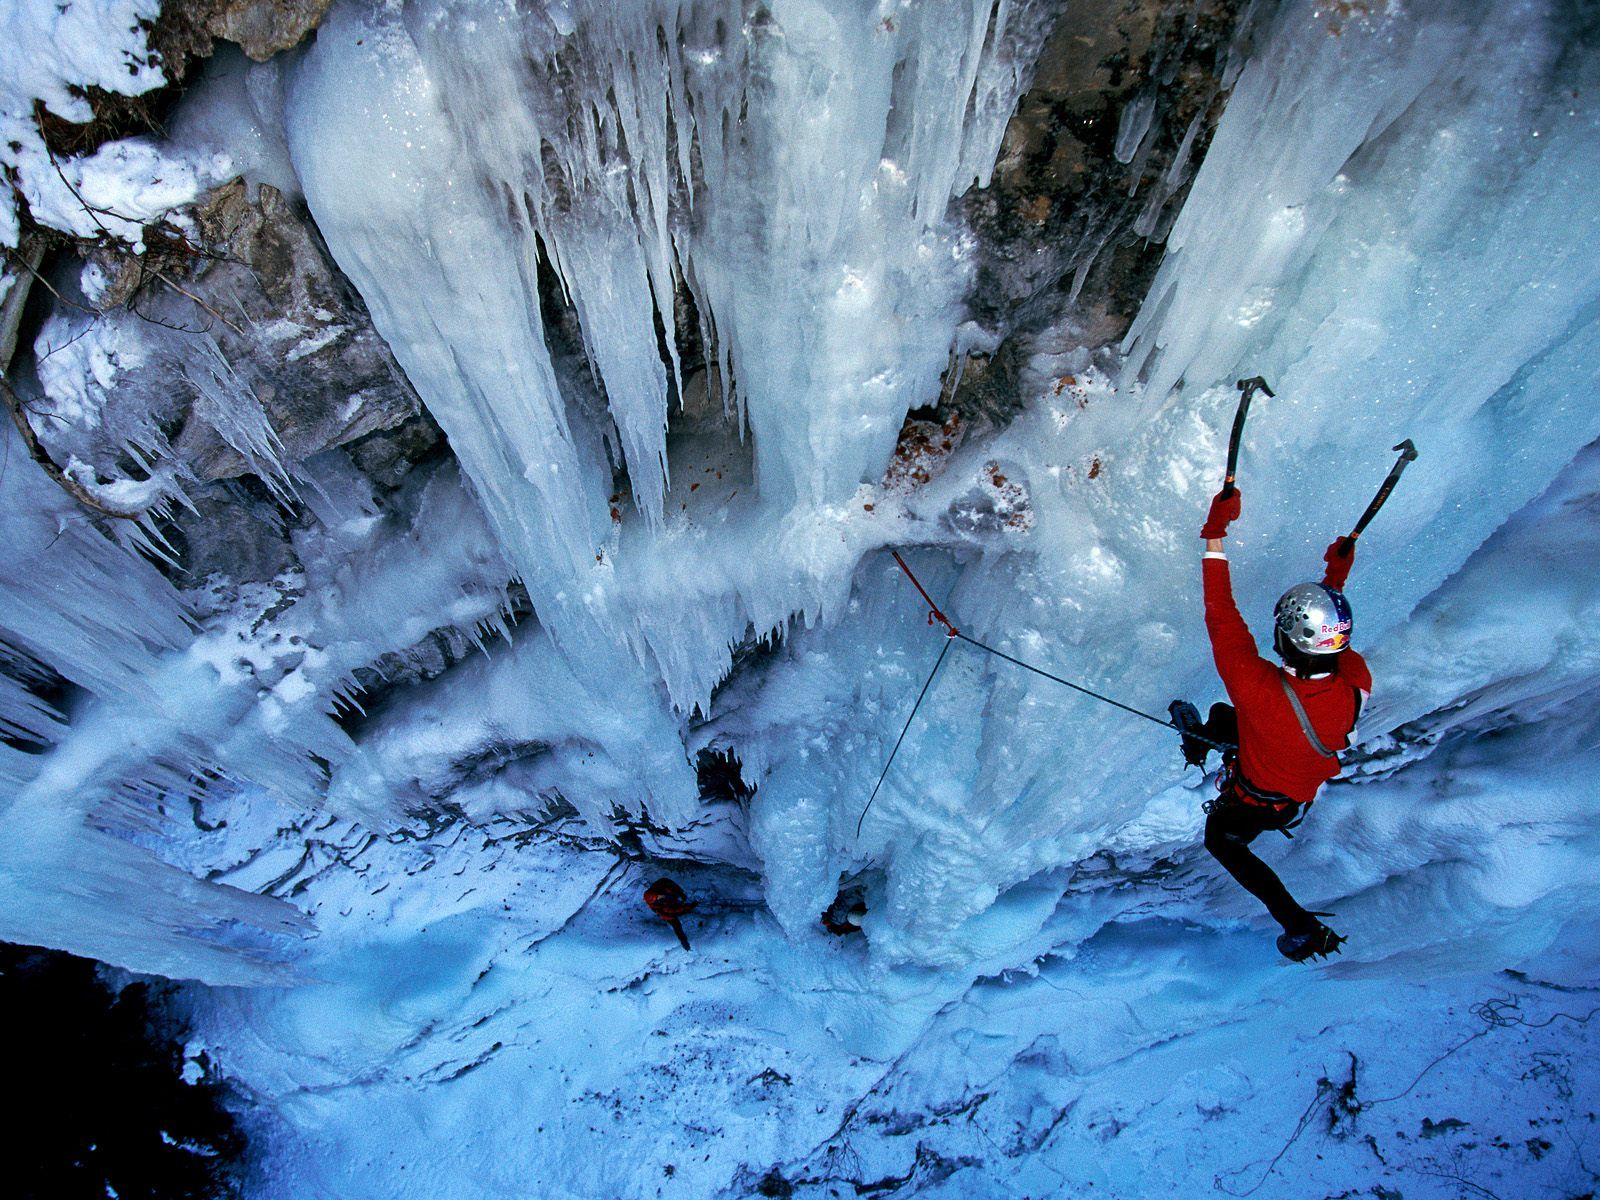 Adventure Holidays Alicante Local BiniBlog Travel Lifestyle Experience Ice Climbing Chamonix France Alpine French Alps Winter Sport